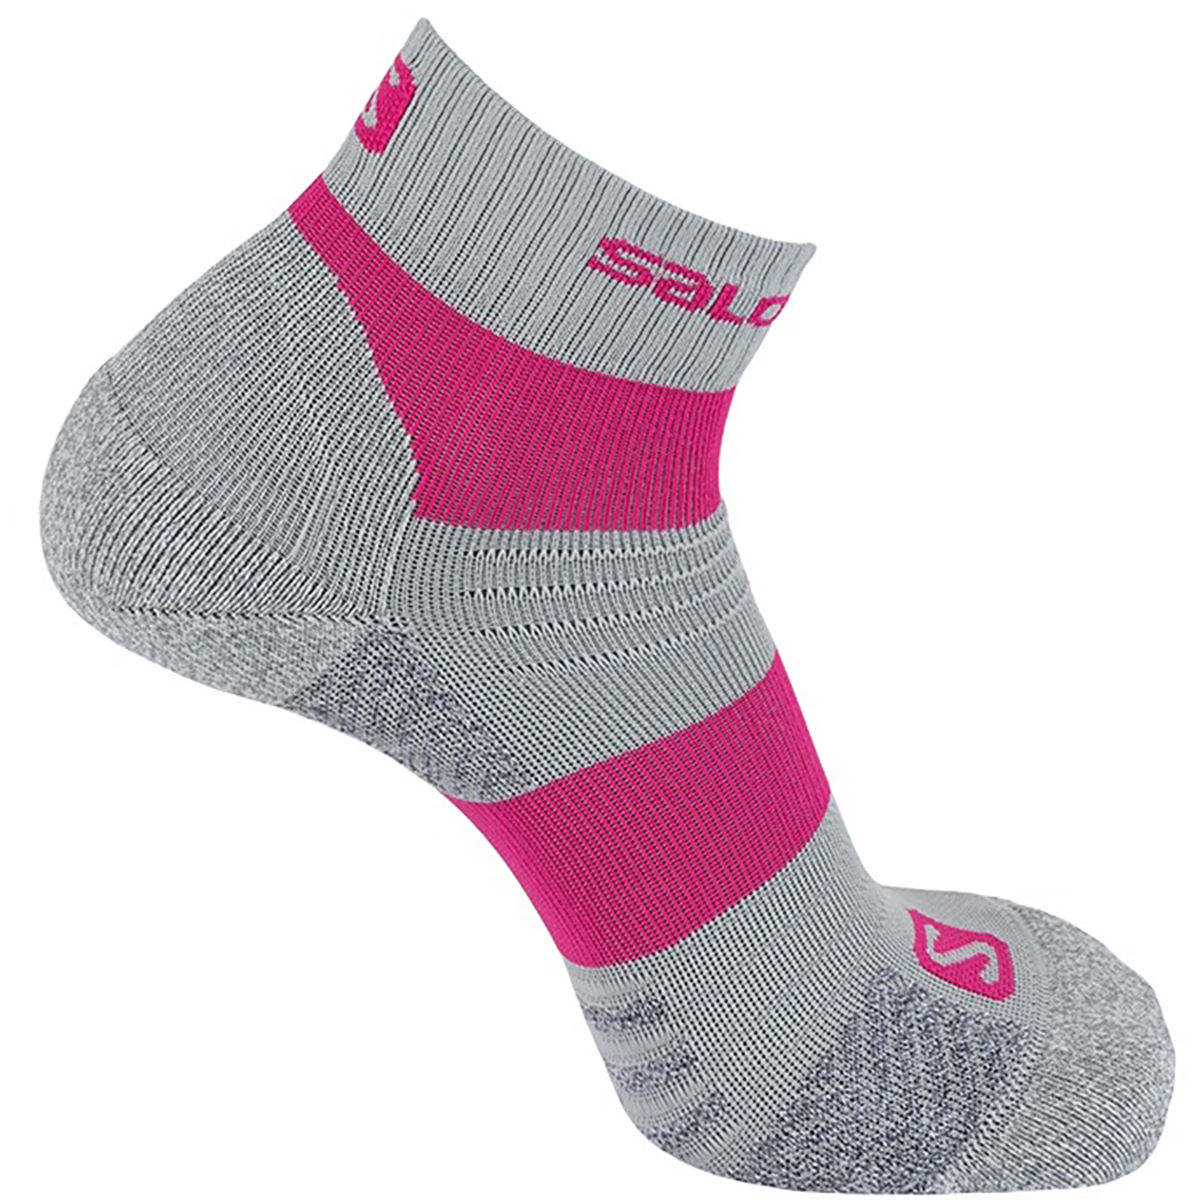 Salomon Women's Quest Low Hiking Socks   Socks